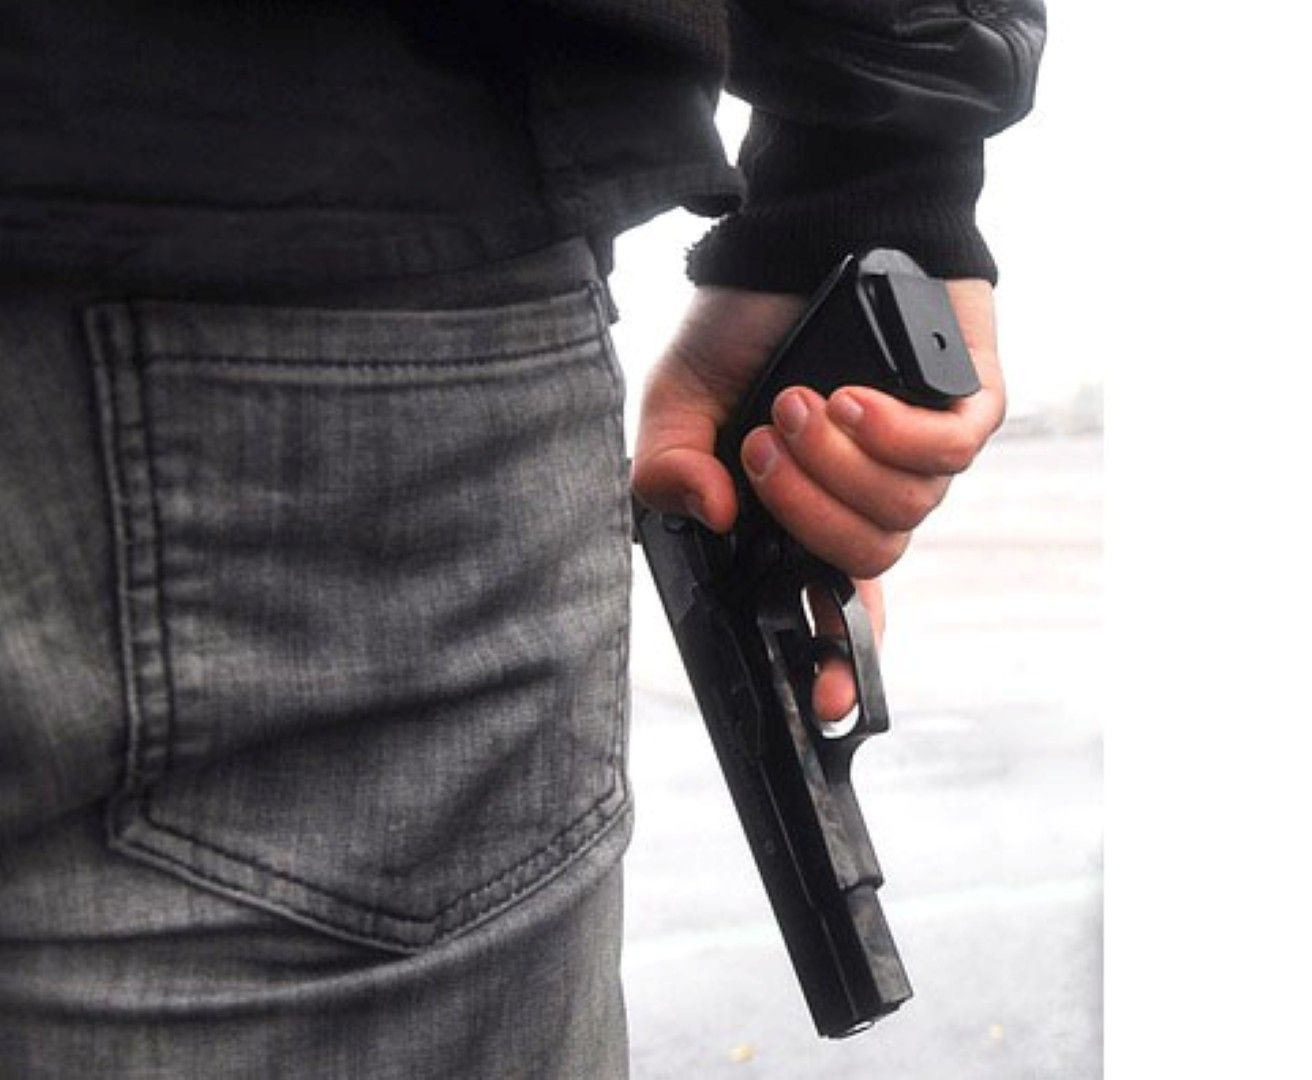 Police are investigating an armed robbery at Petroport